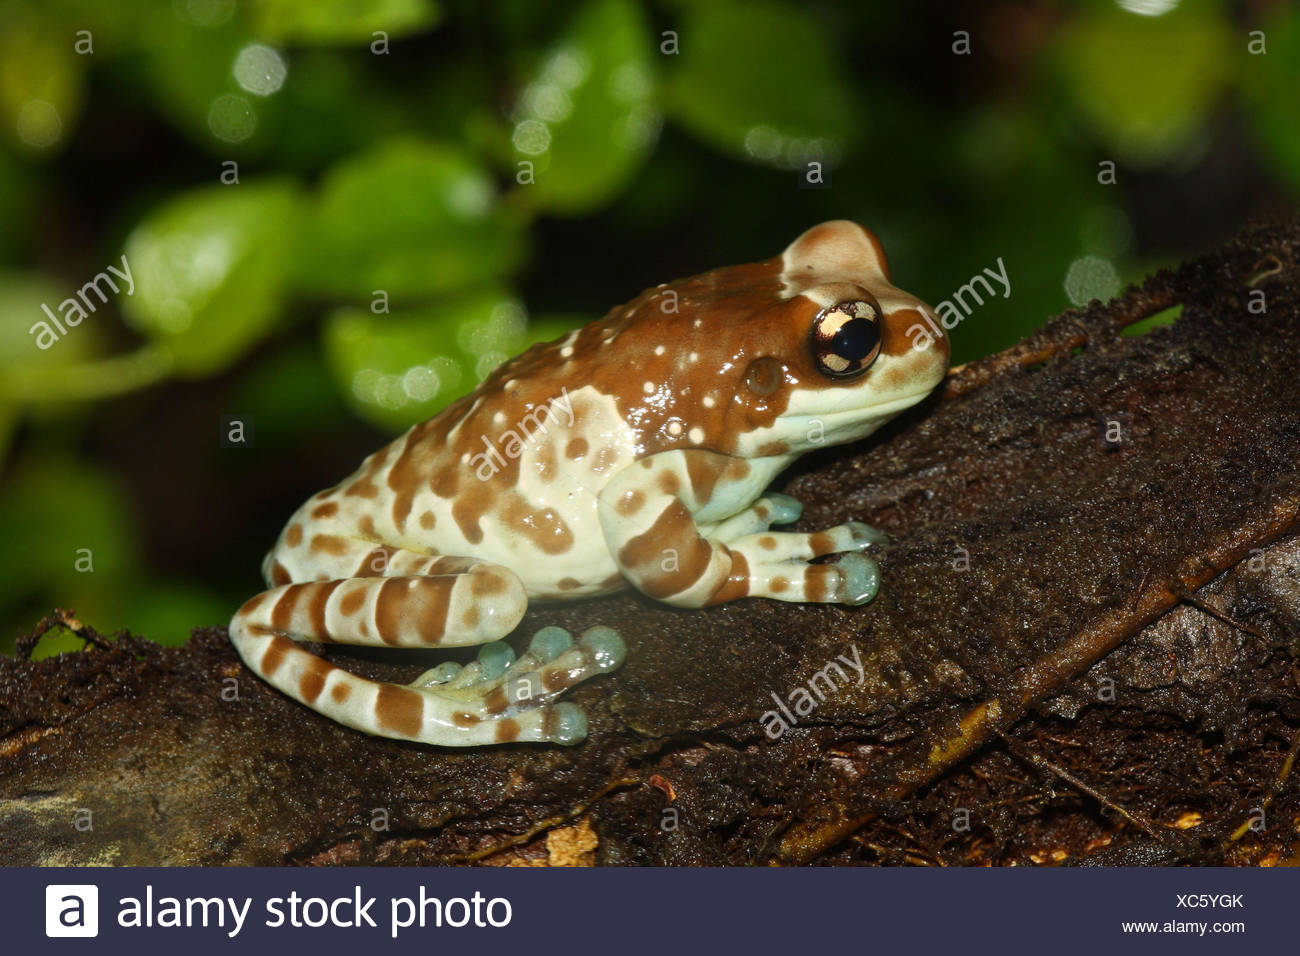 Toad foliage frog, - Stock Image